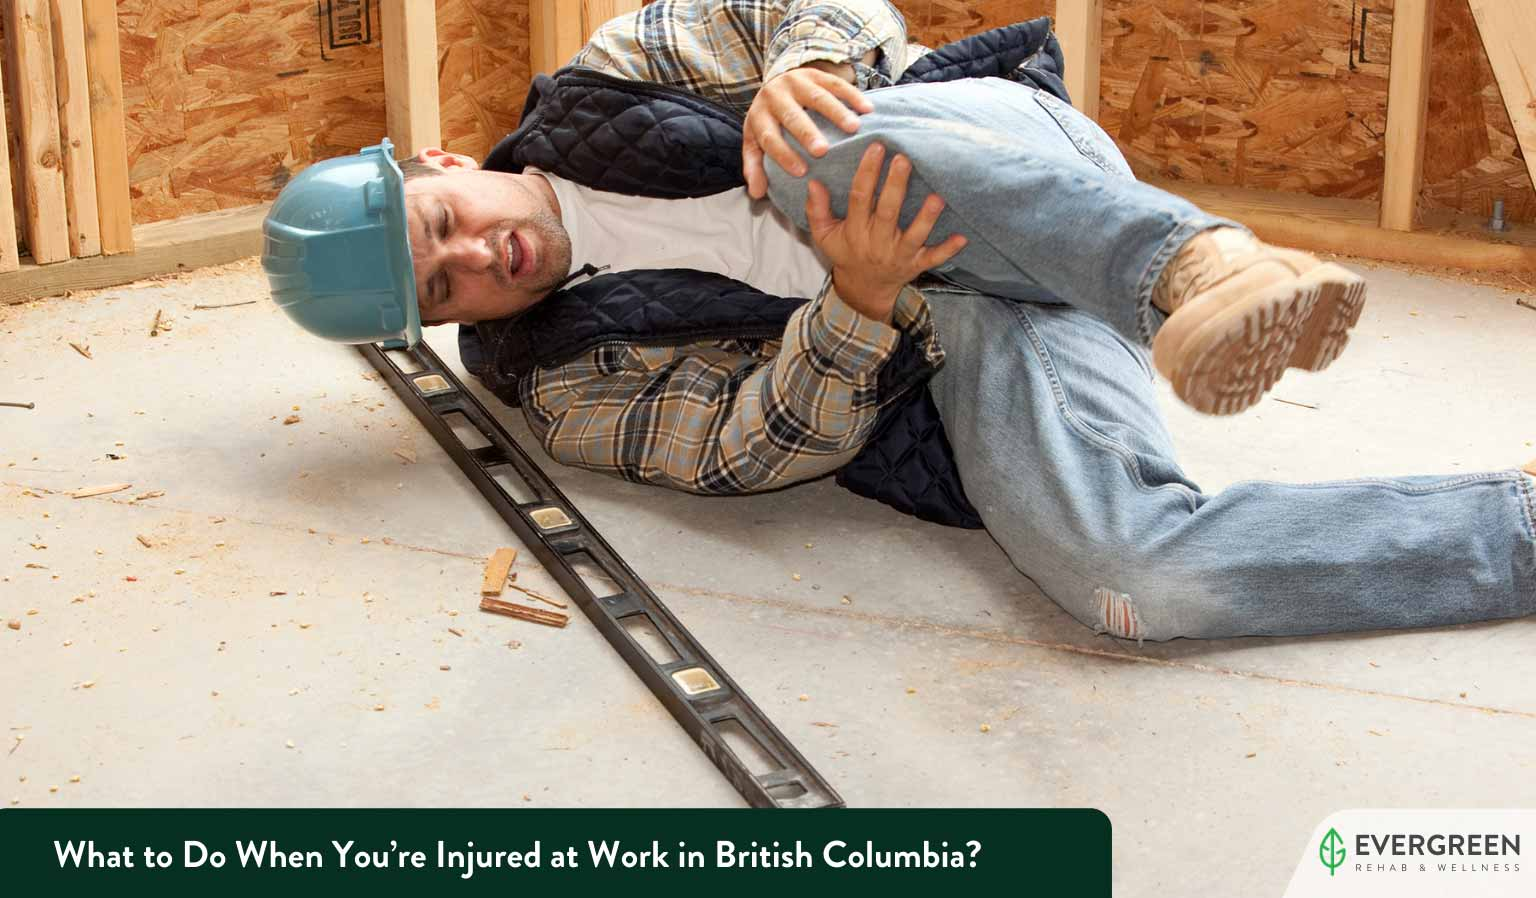 What To Do When You're Injured at Work in British Columbia?